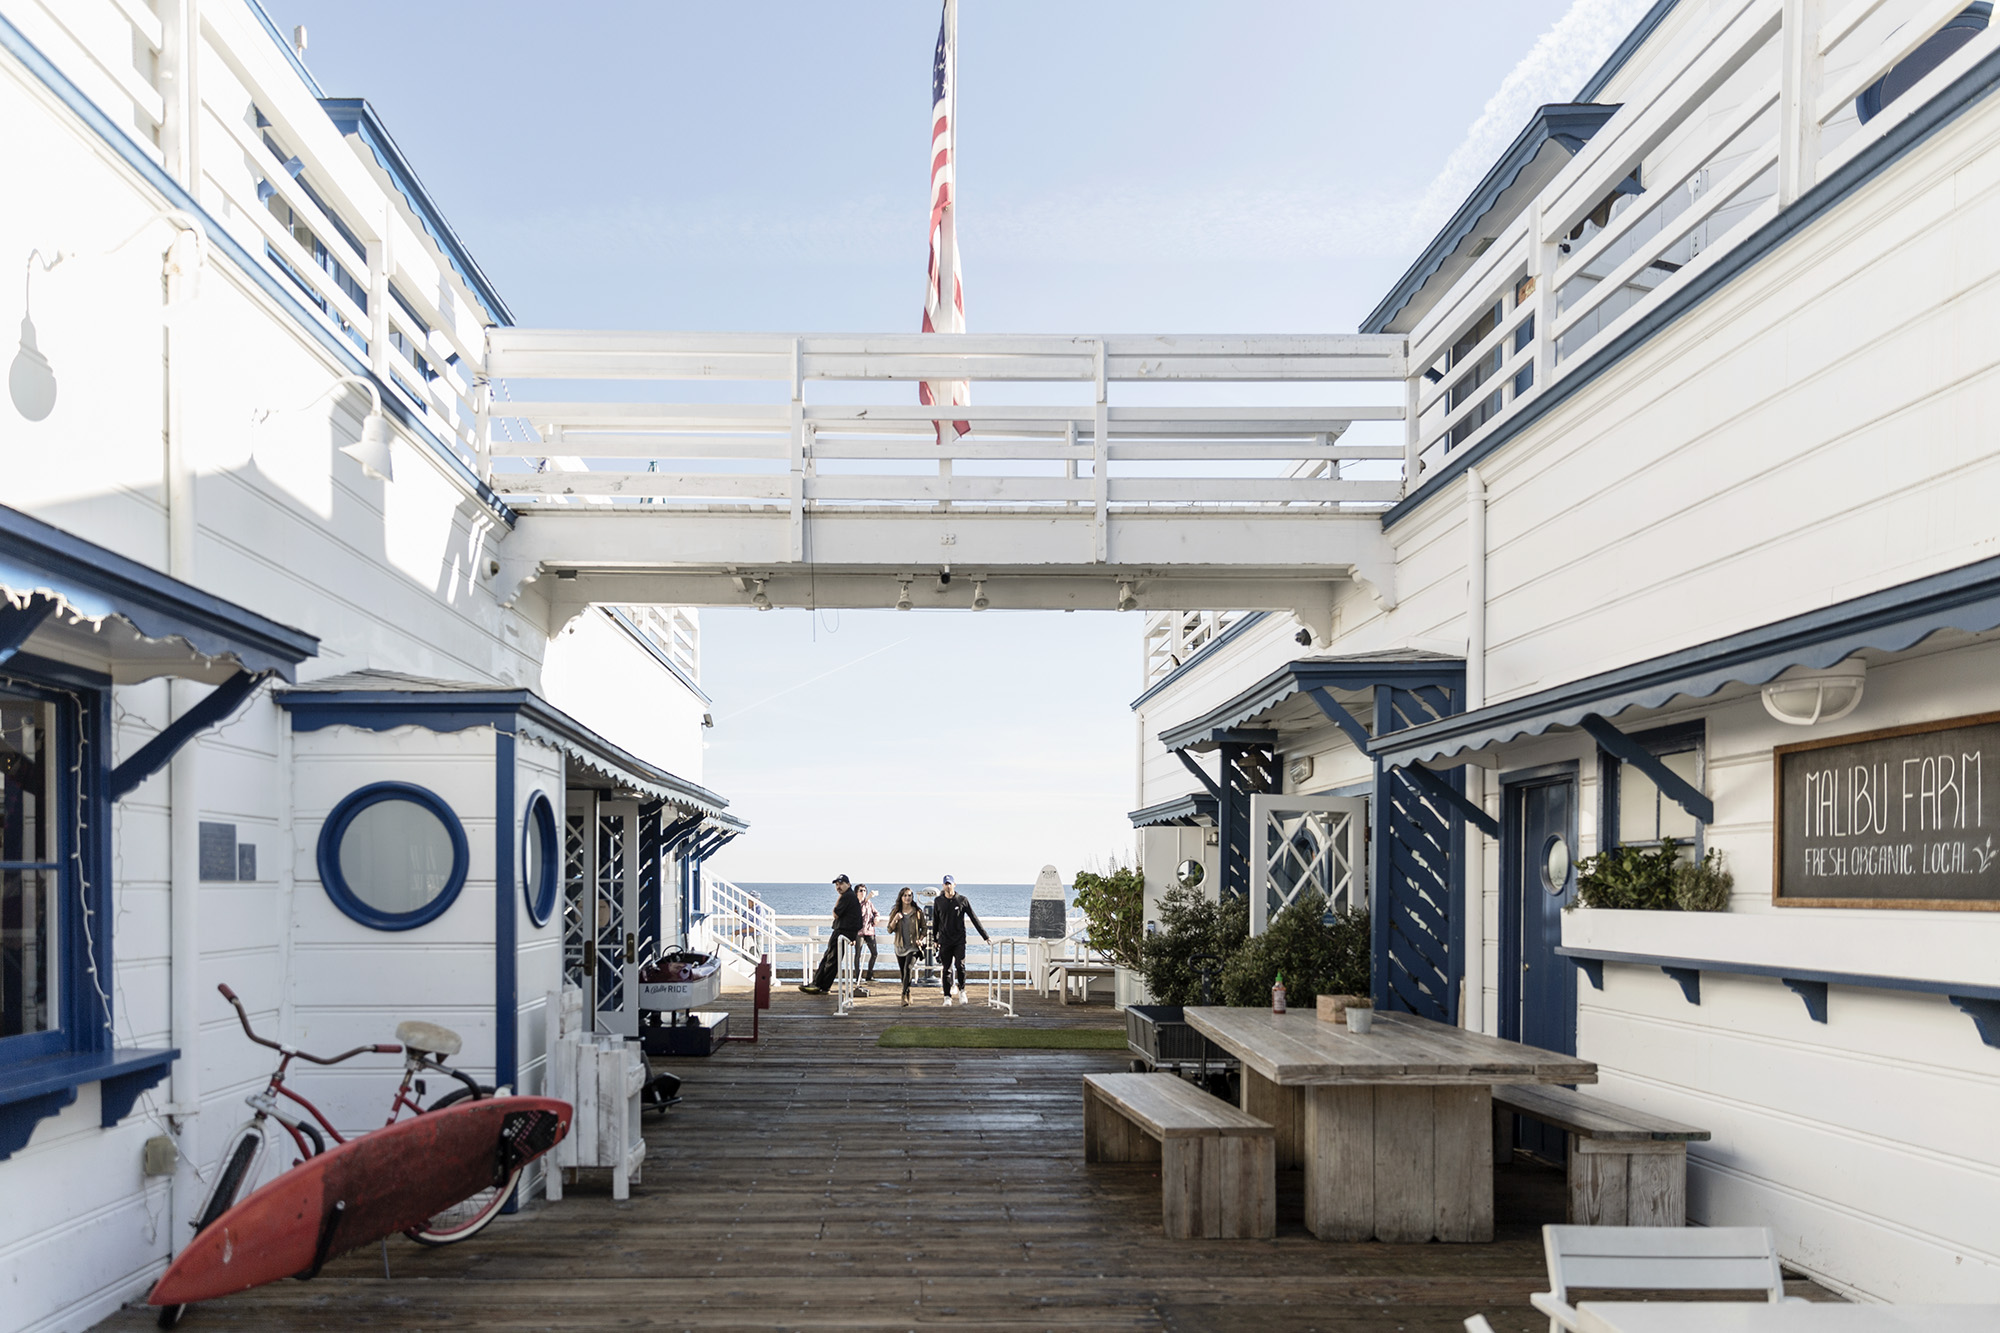 People enjoy the Malibu Pier by Denver Boulder Colorado Editorial and Commercial Photographer Rebecca Stumpf, specializing in food, lifestyle, and travel.